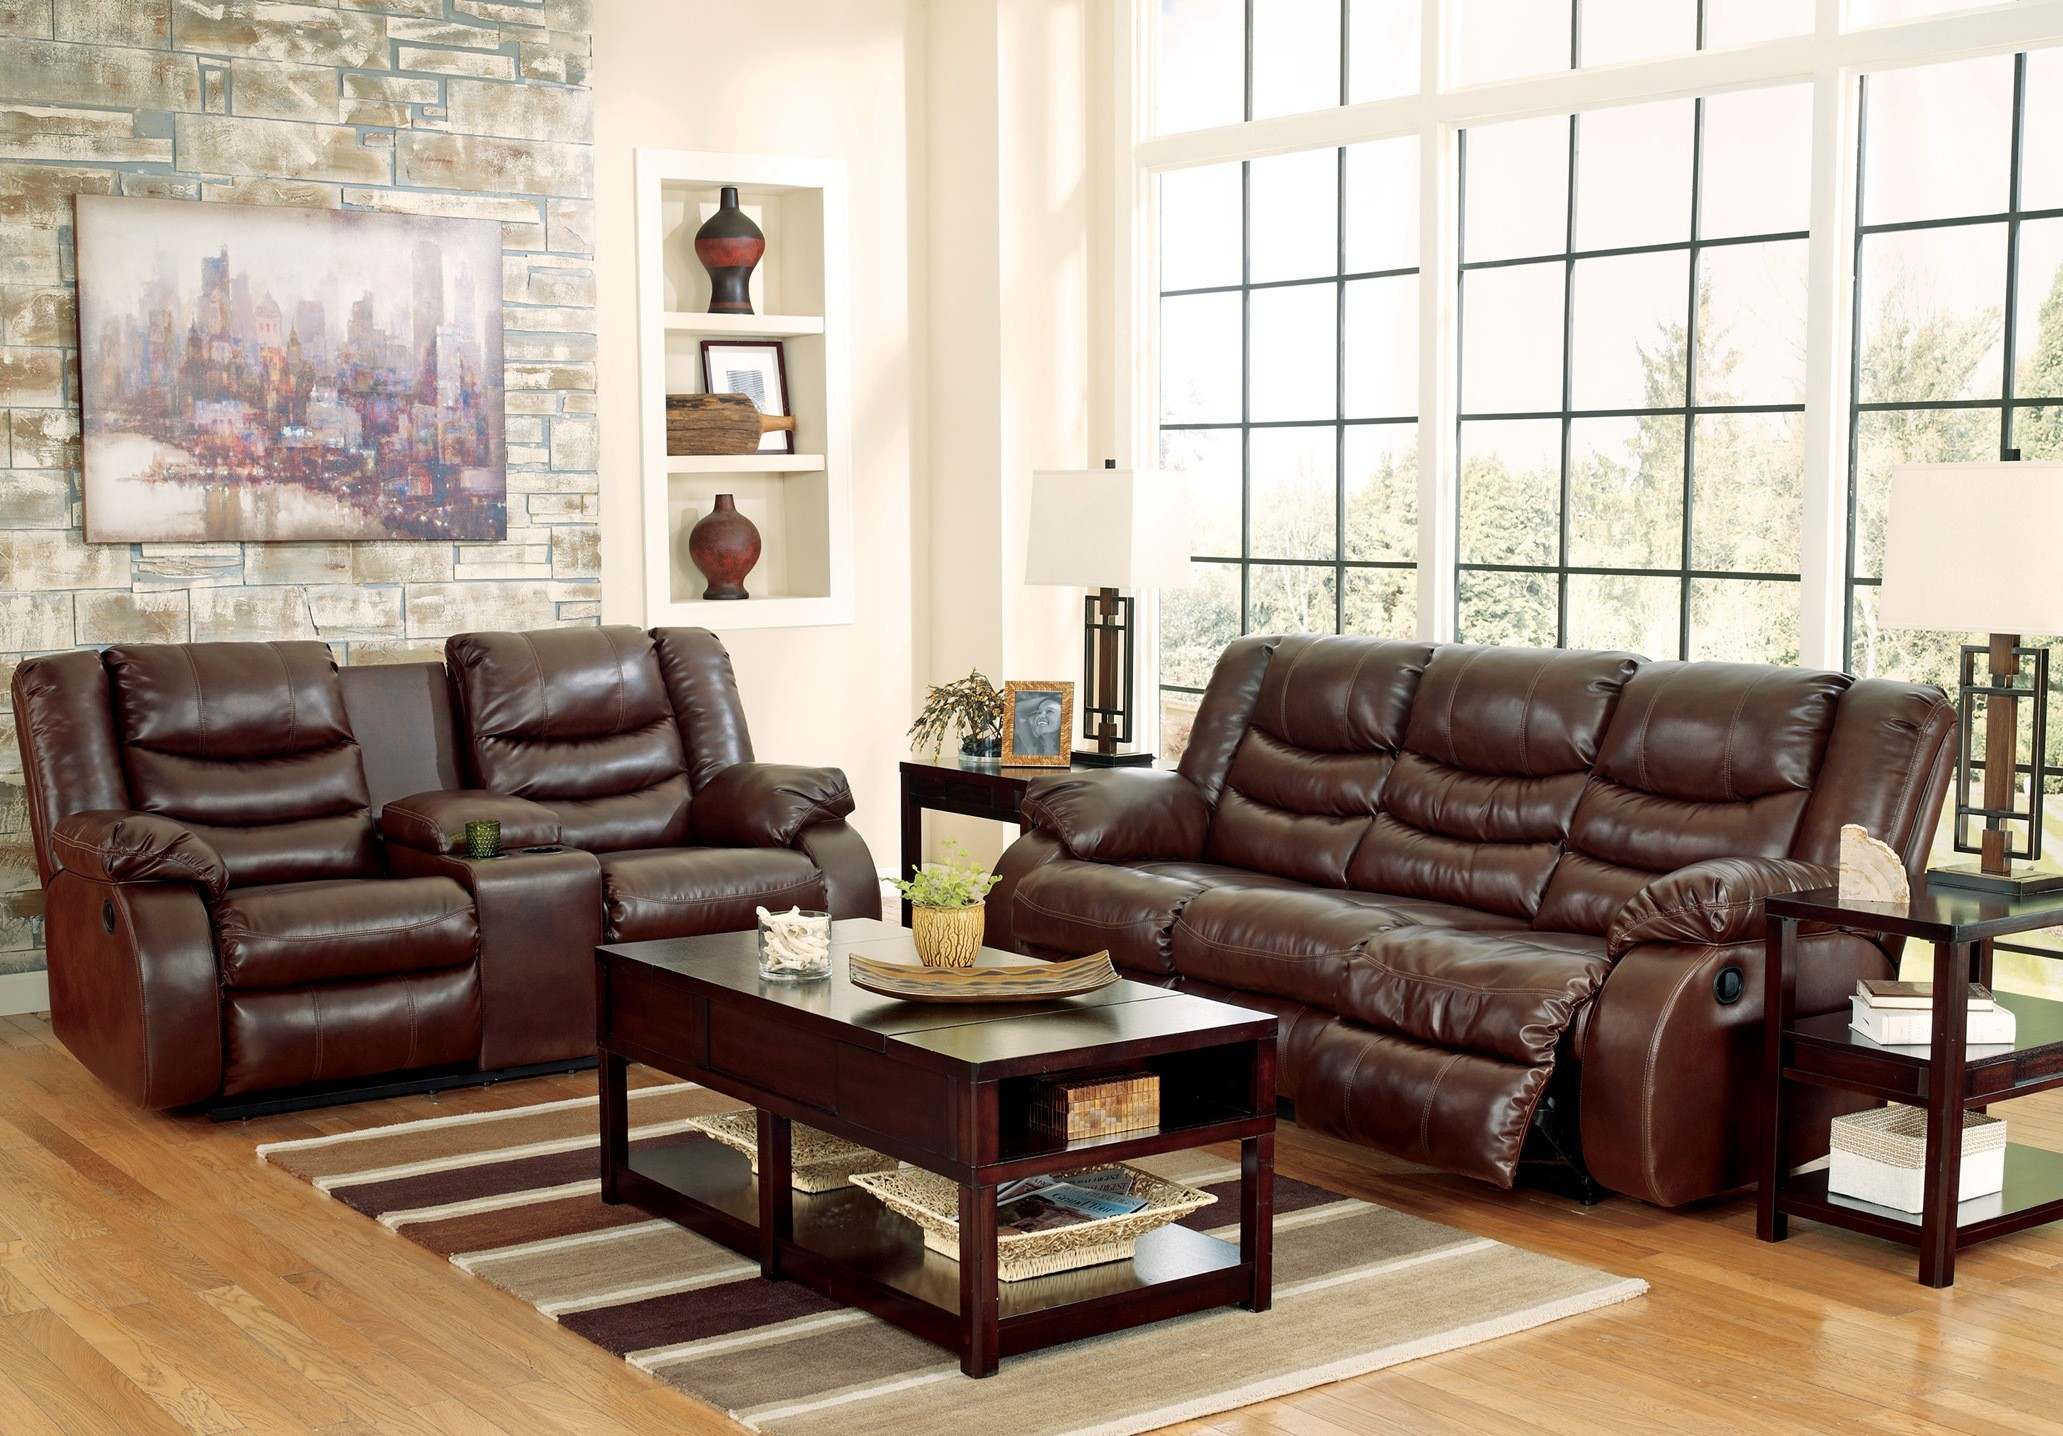 Linebacker Durablend Espresso Reclining Living Room Set